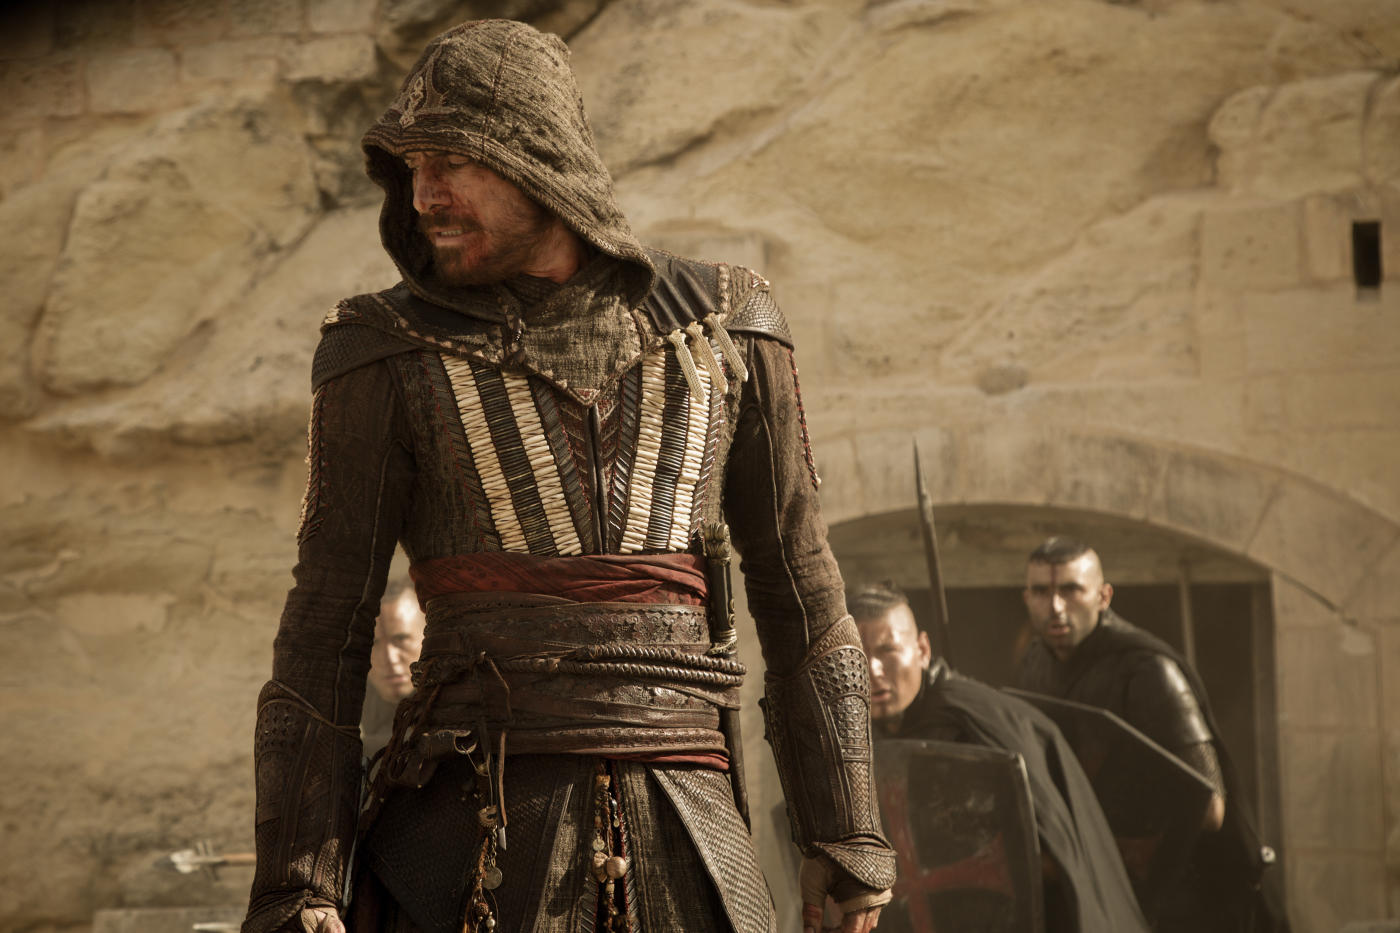 Assassins Creed mit Michael Fassbender Kritik OHNE SPOILER